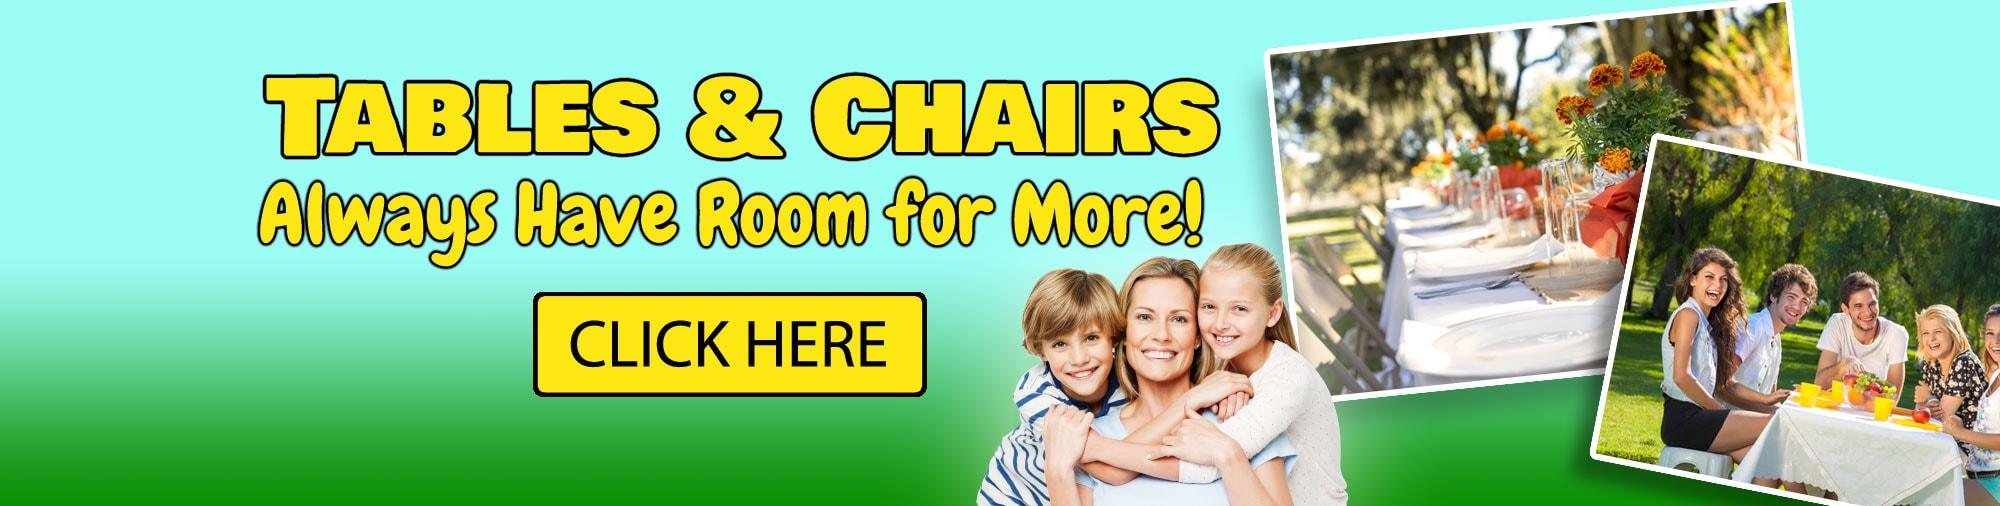 Austin Table & Chair Rentals